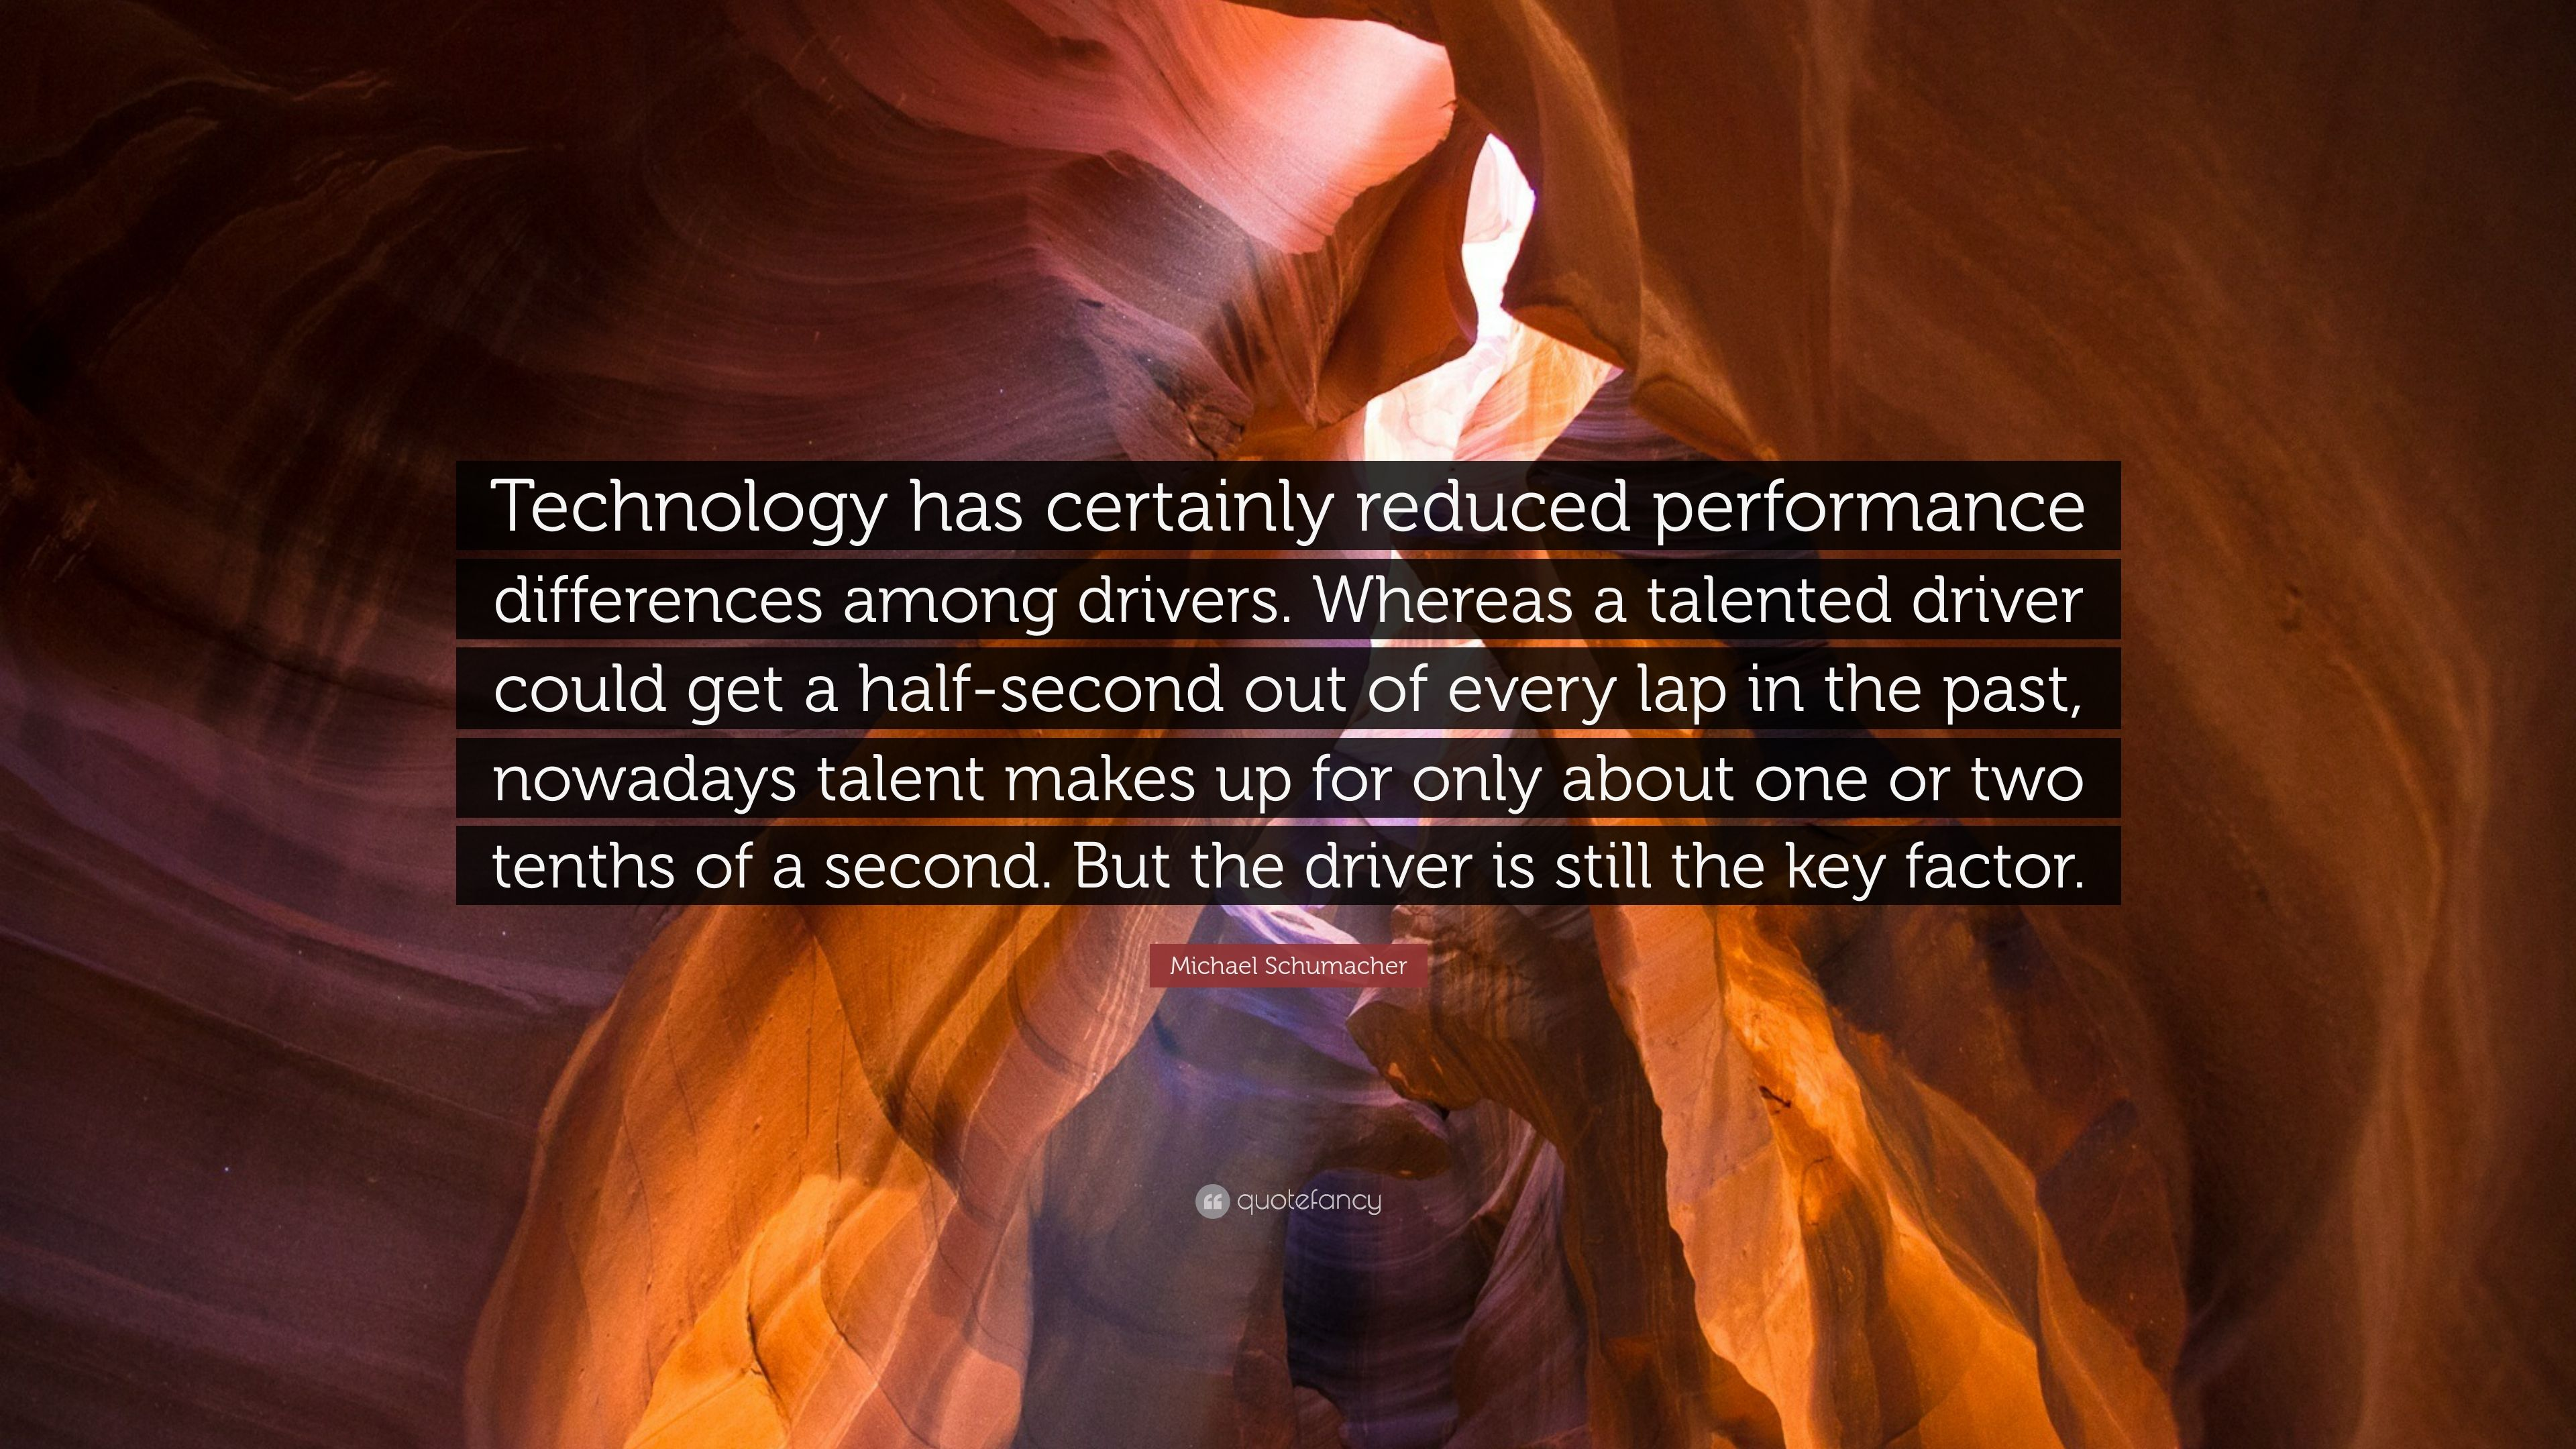 Michael Schumacher Quote Technology Has Certainly Reduced Performance Differences Among Drivers Whereas A Talented Driver Could Get A Half Secon 7 Wallpapers Quotefancy